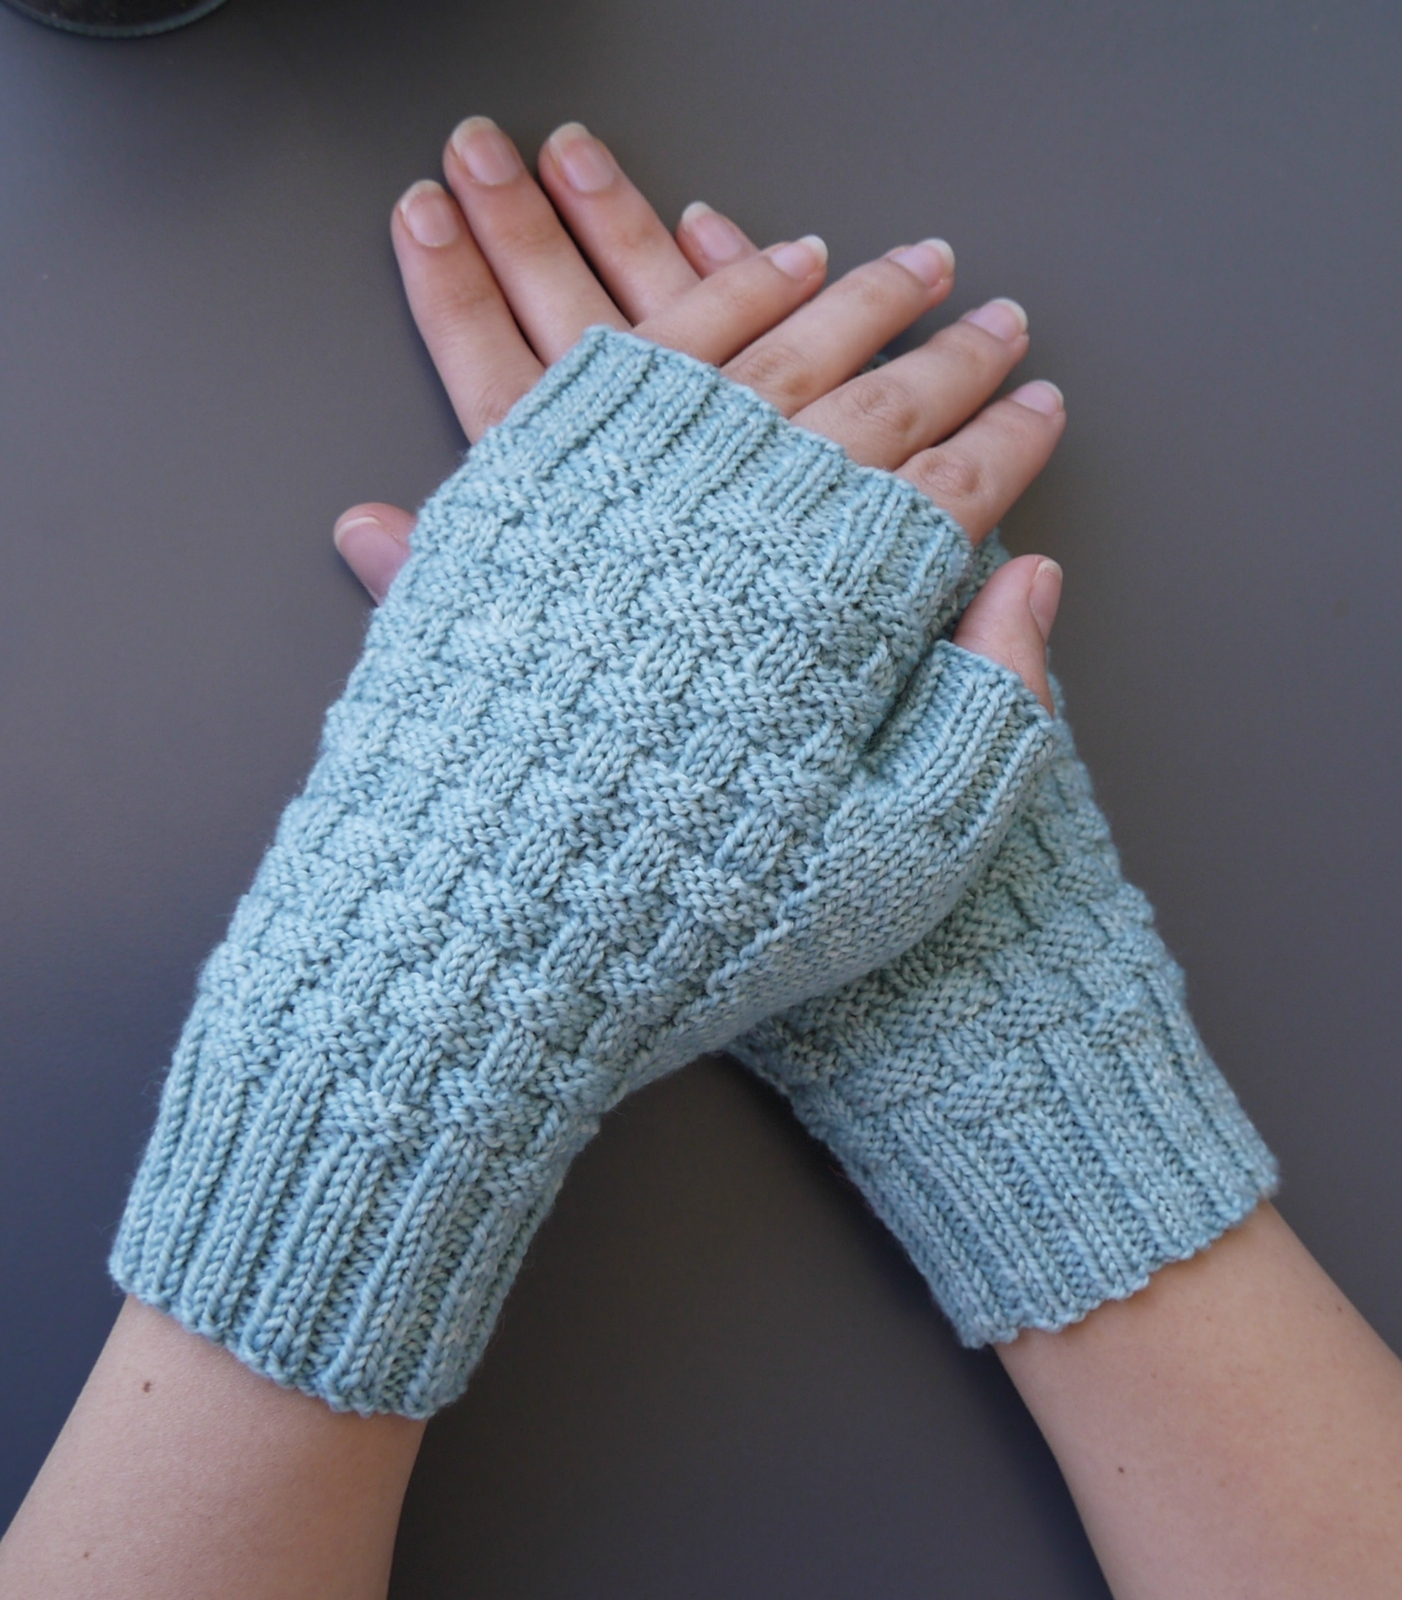 Fingerless Gloves Knitting Pattern Nz : Kete Fingerless Gloves